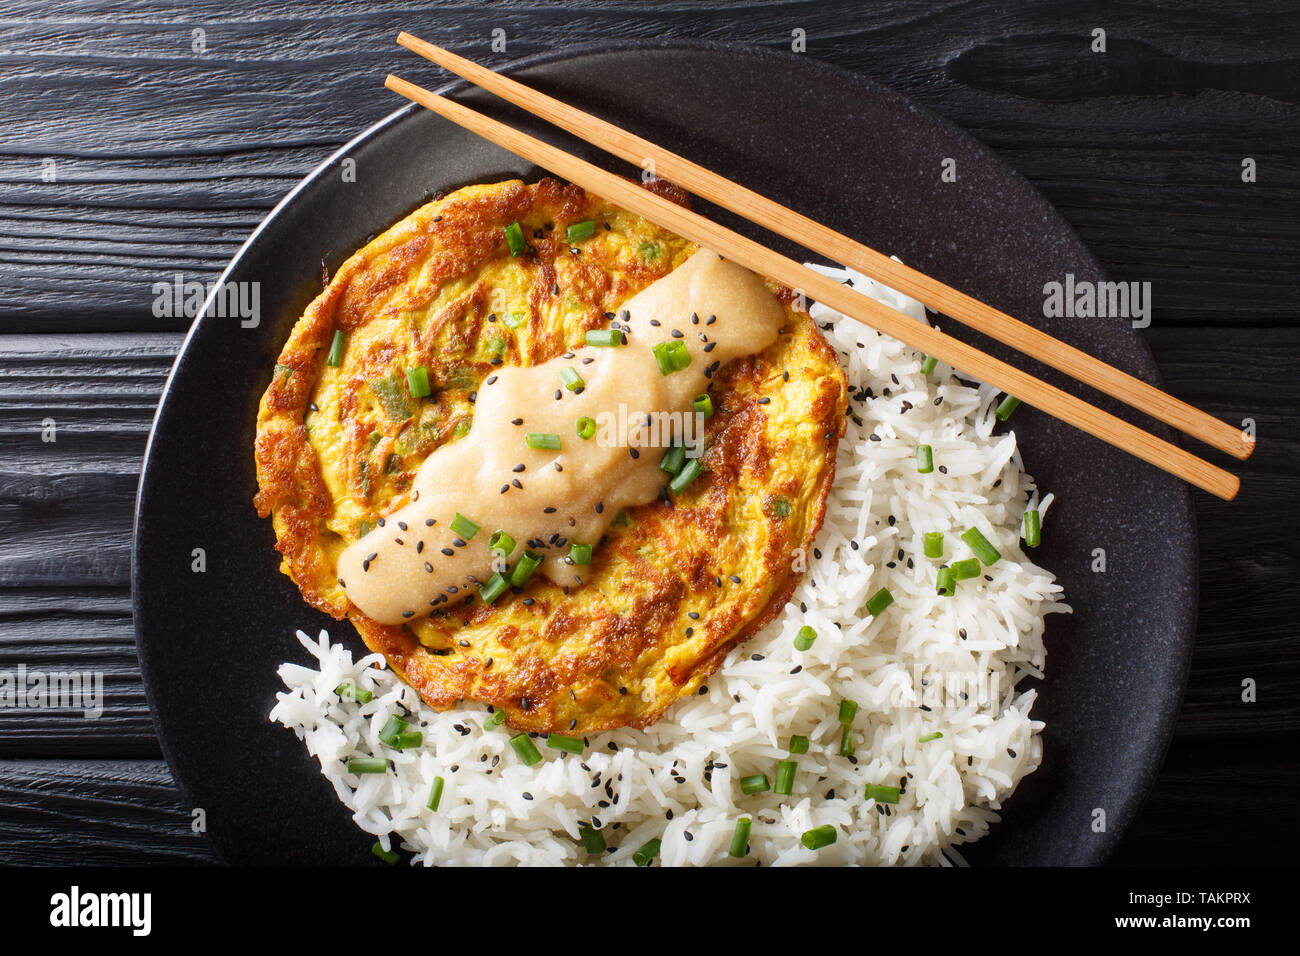 Egg foo yong fried egg patty containing vegetables  and meat with rice garnish close-up on a plate on the table. horizontal top view from above - Stock Image